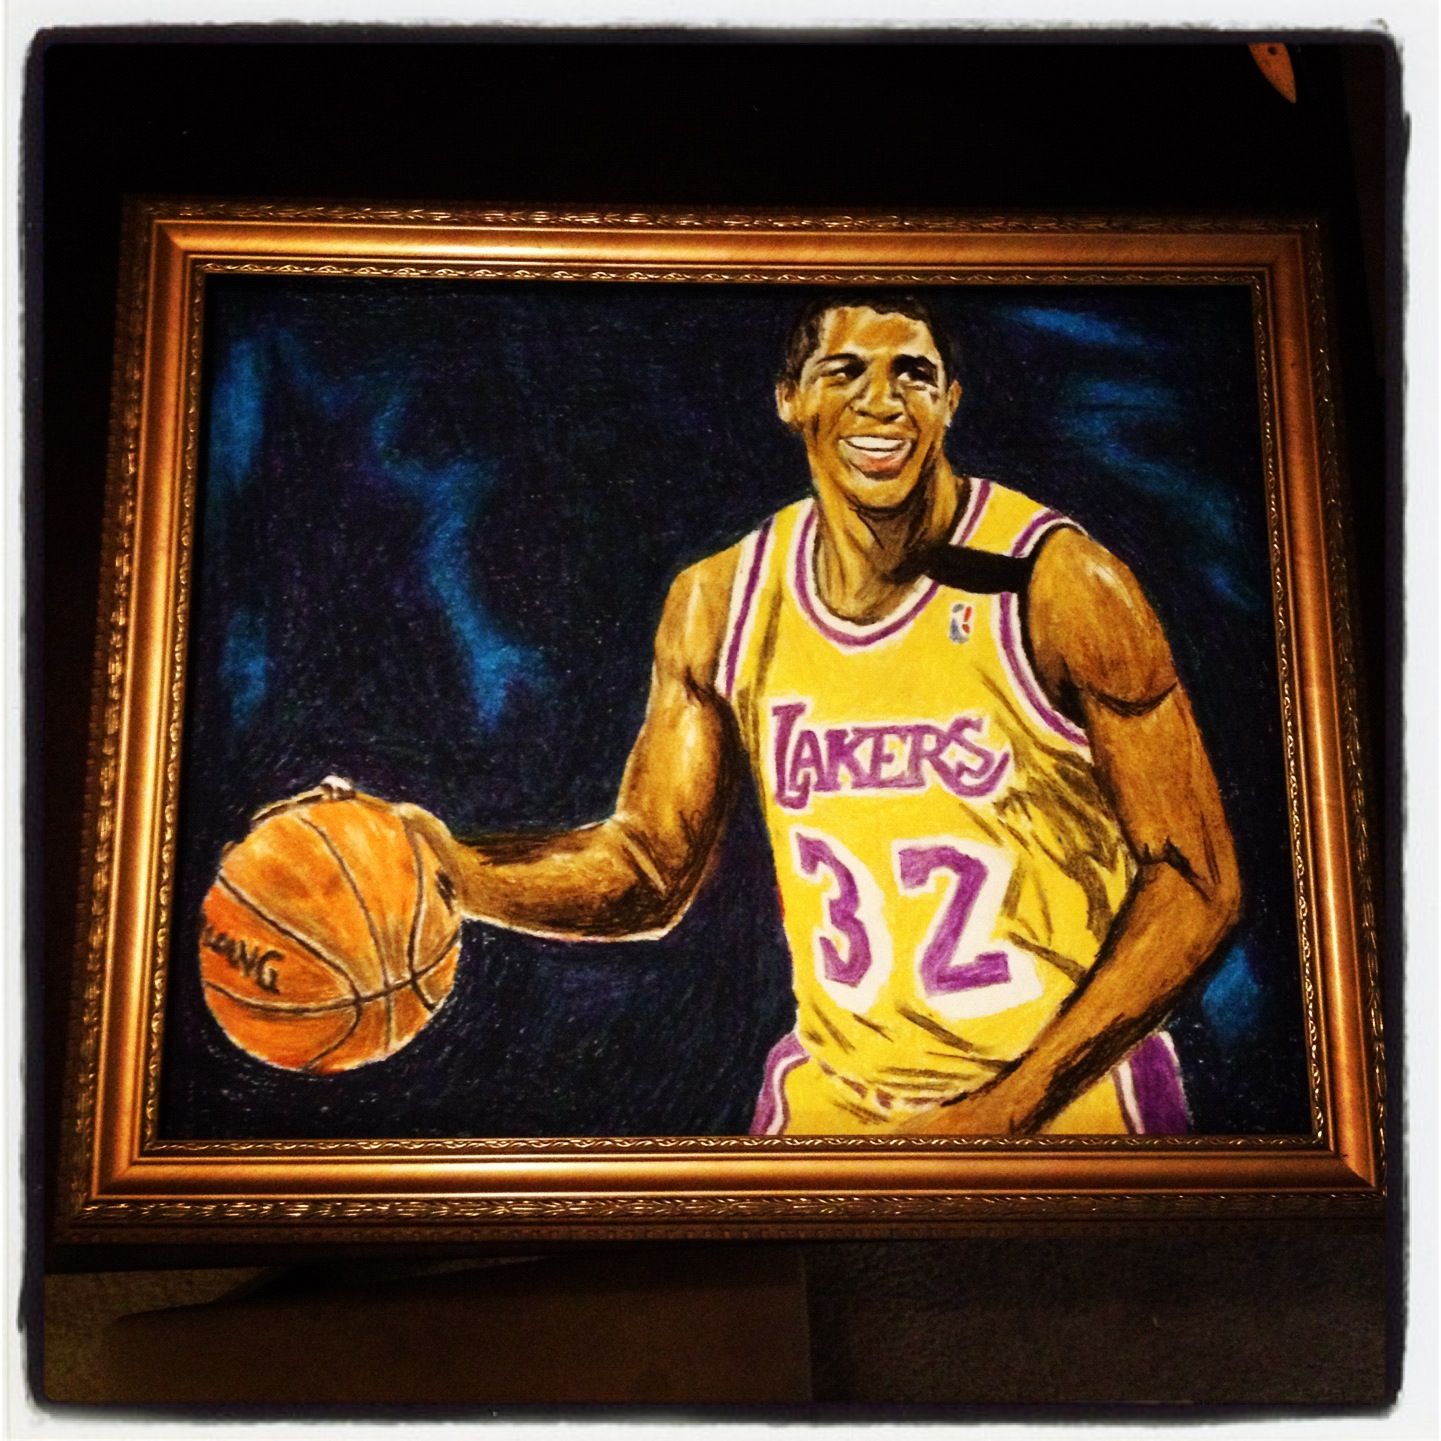 Done. Had to use the classic gold frame for the legend.